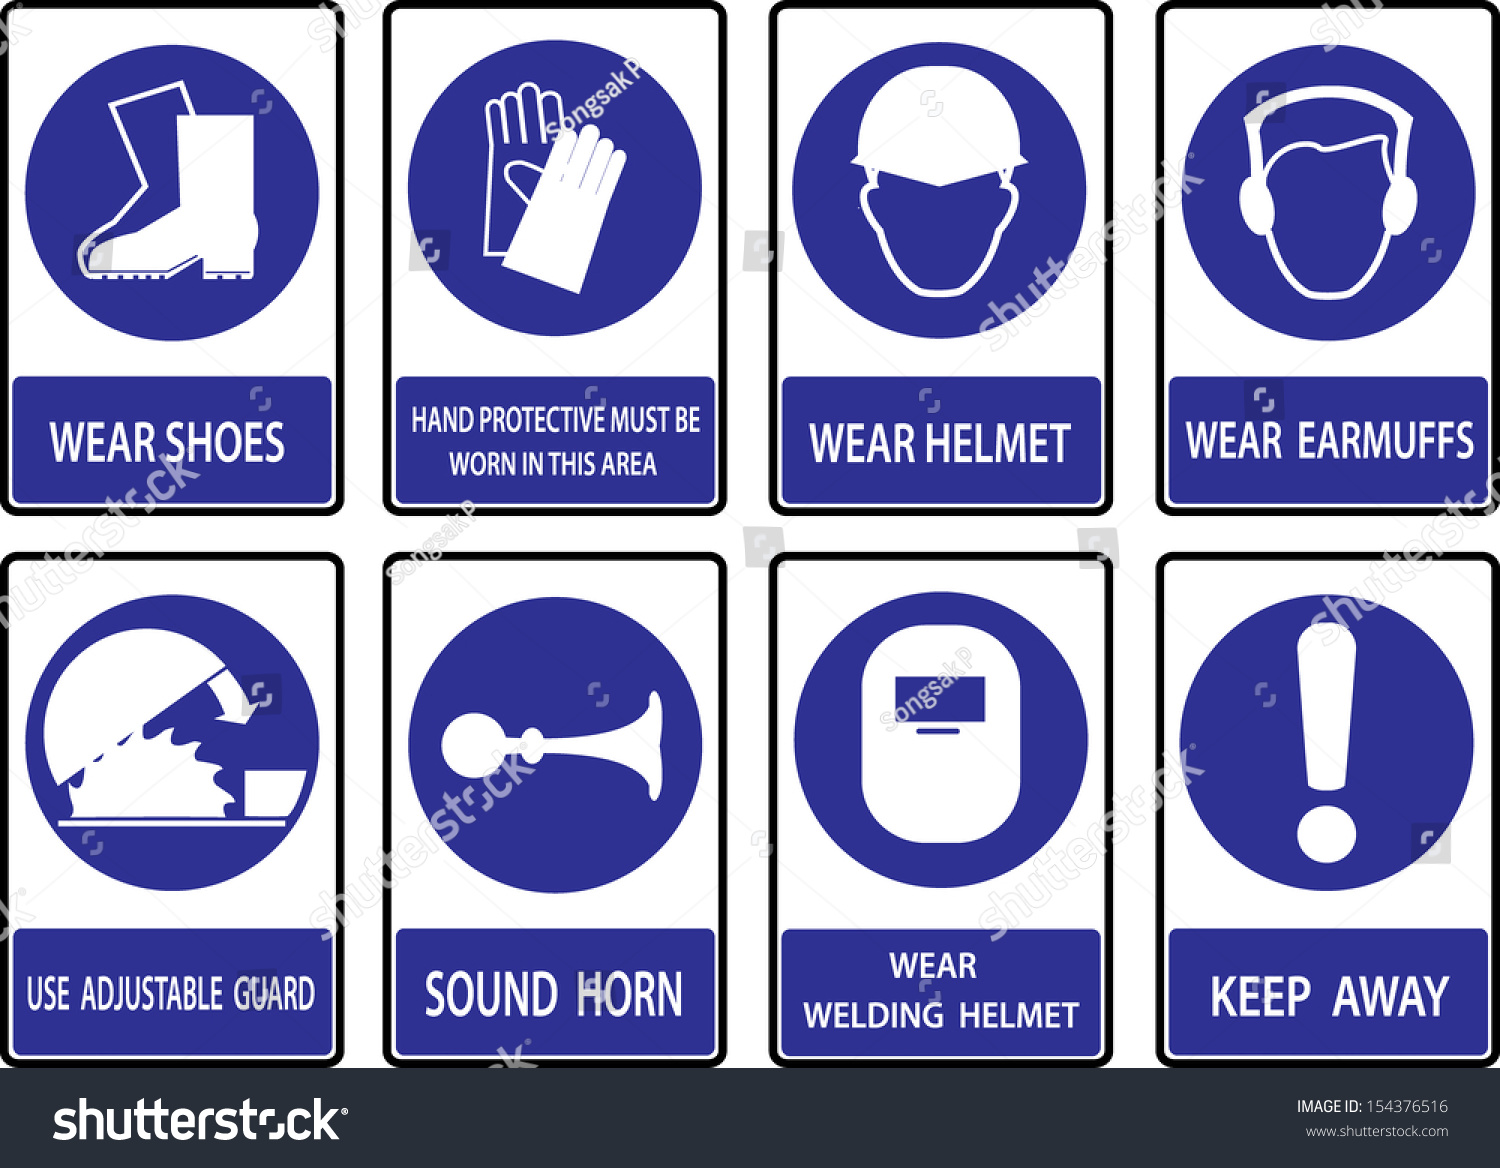 Mandatory Signs Construction Health Safety Sign Stock Vector